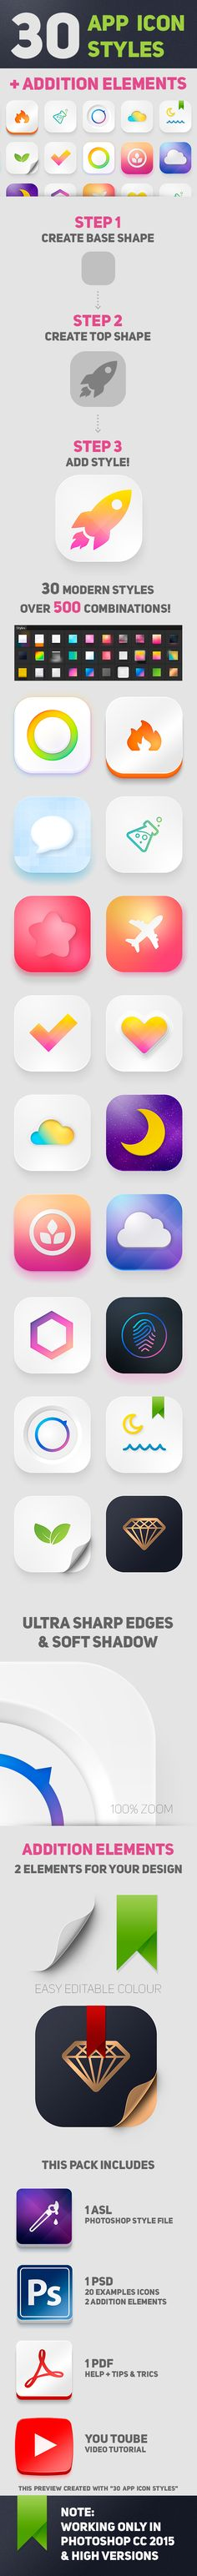 30 App Icon Styles. With these styles, you can create beautiful, modern icons. It's easy, just a few clicks! #app, #asl, #awesome, #bundle, #clean, #easy edit, #editable, #flat, #icon, #mobile app icons, #modern, #pack, #photoshop styles, #psd, #realistic, #soft, #style, #trending, #mobile, #app